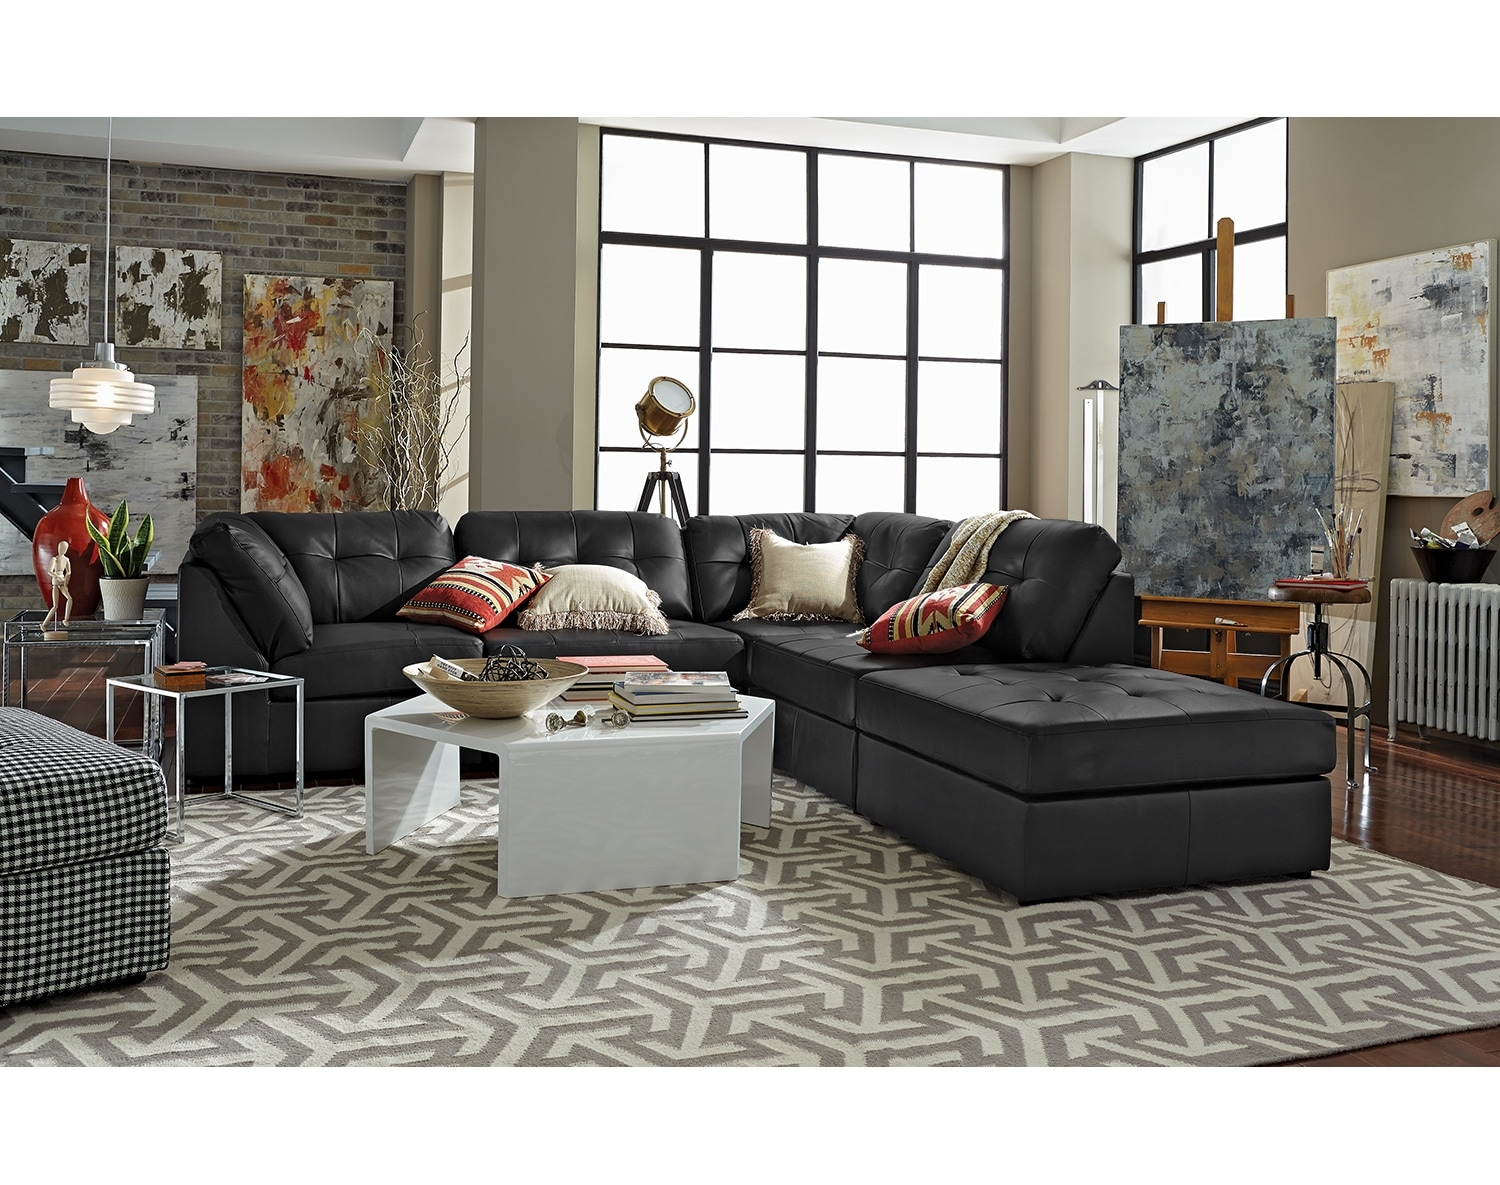 Living Room Furniture - The Largo Black Collection - 5 Pc. Sectional